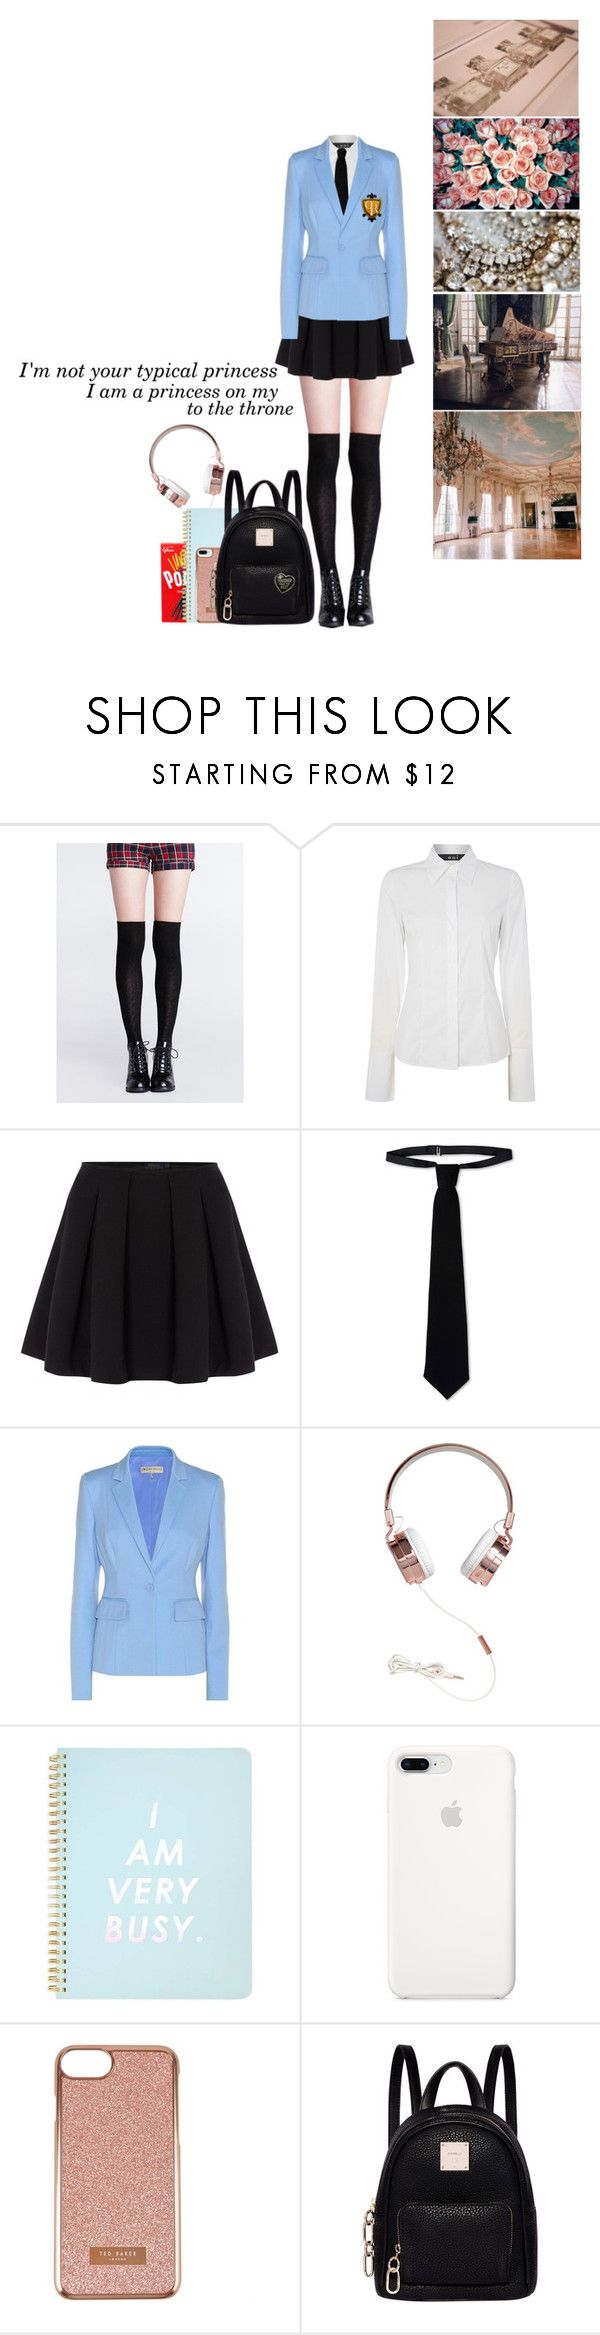 """""""Me in OHSHC"""" by pastelgothprincess27 ❤ liked on Polyvore featuring Oui, Polo Ralph Lauren, RED Valentino, Emilio Pucci, Miss Selfridge, Ted Baker and Fiorelli"""